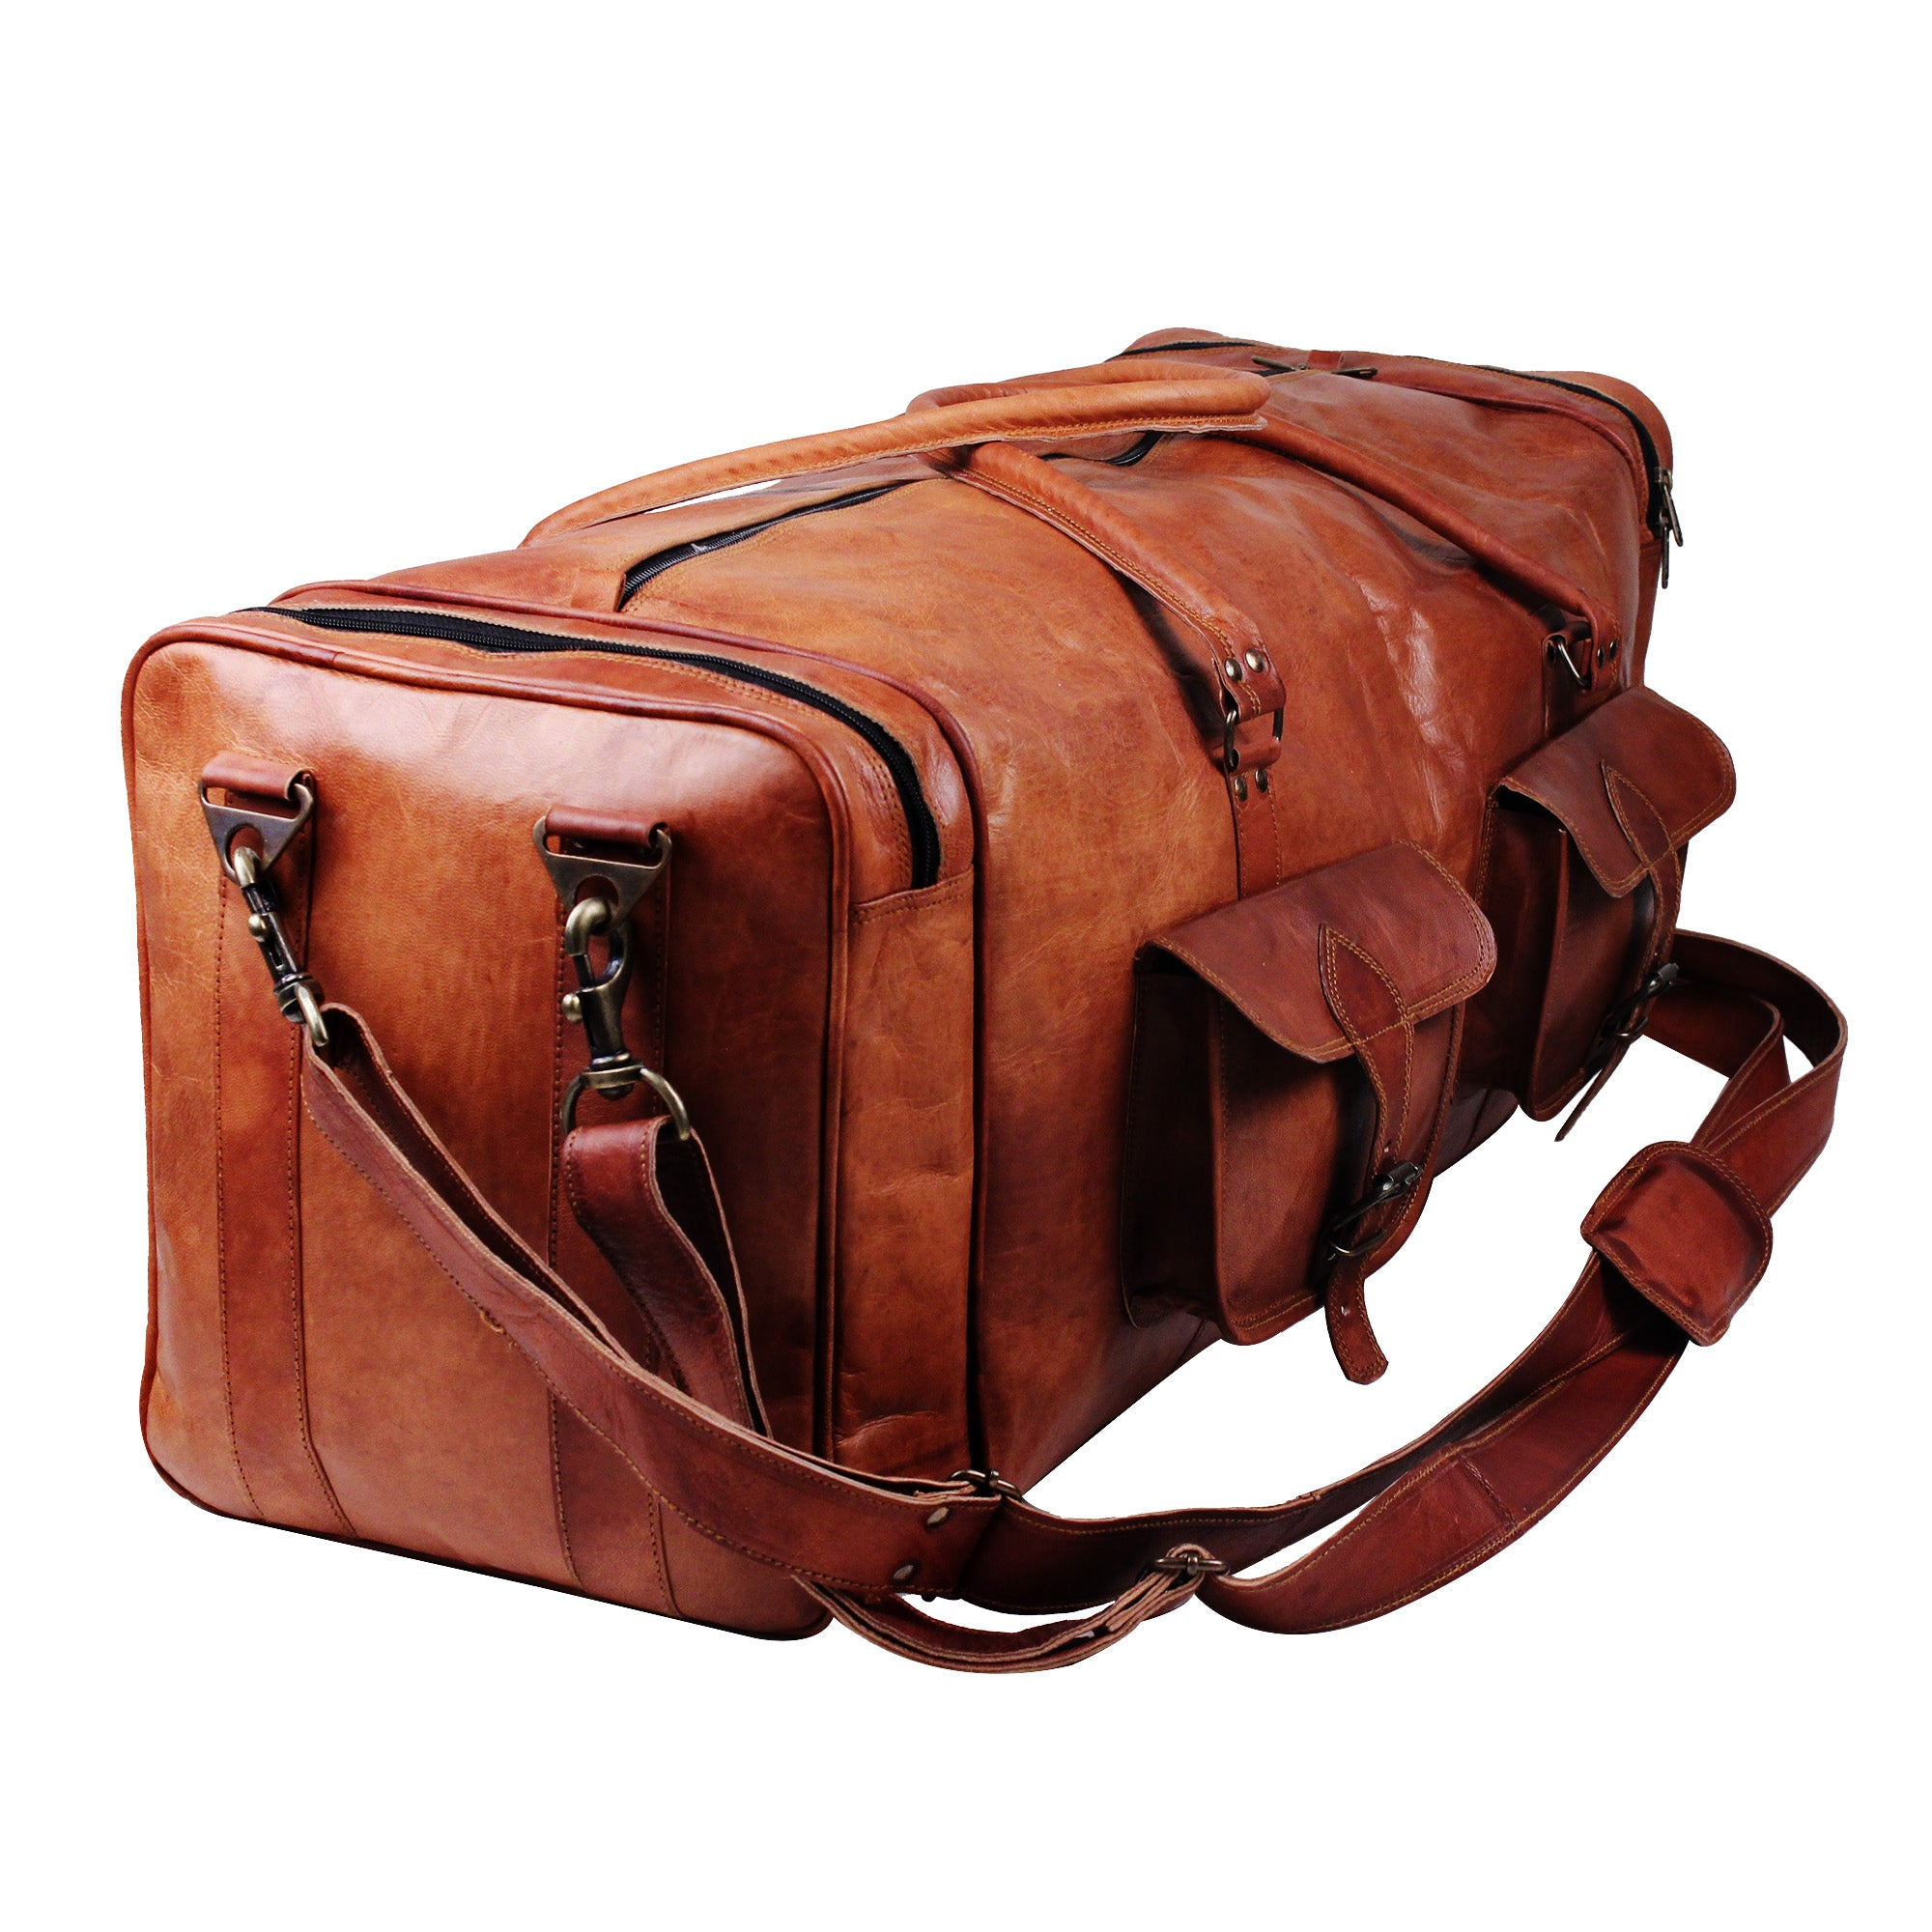 Vintage Leather Sports Duffle Gym Bag